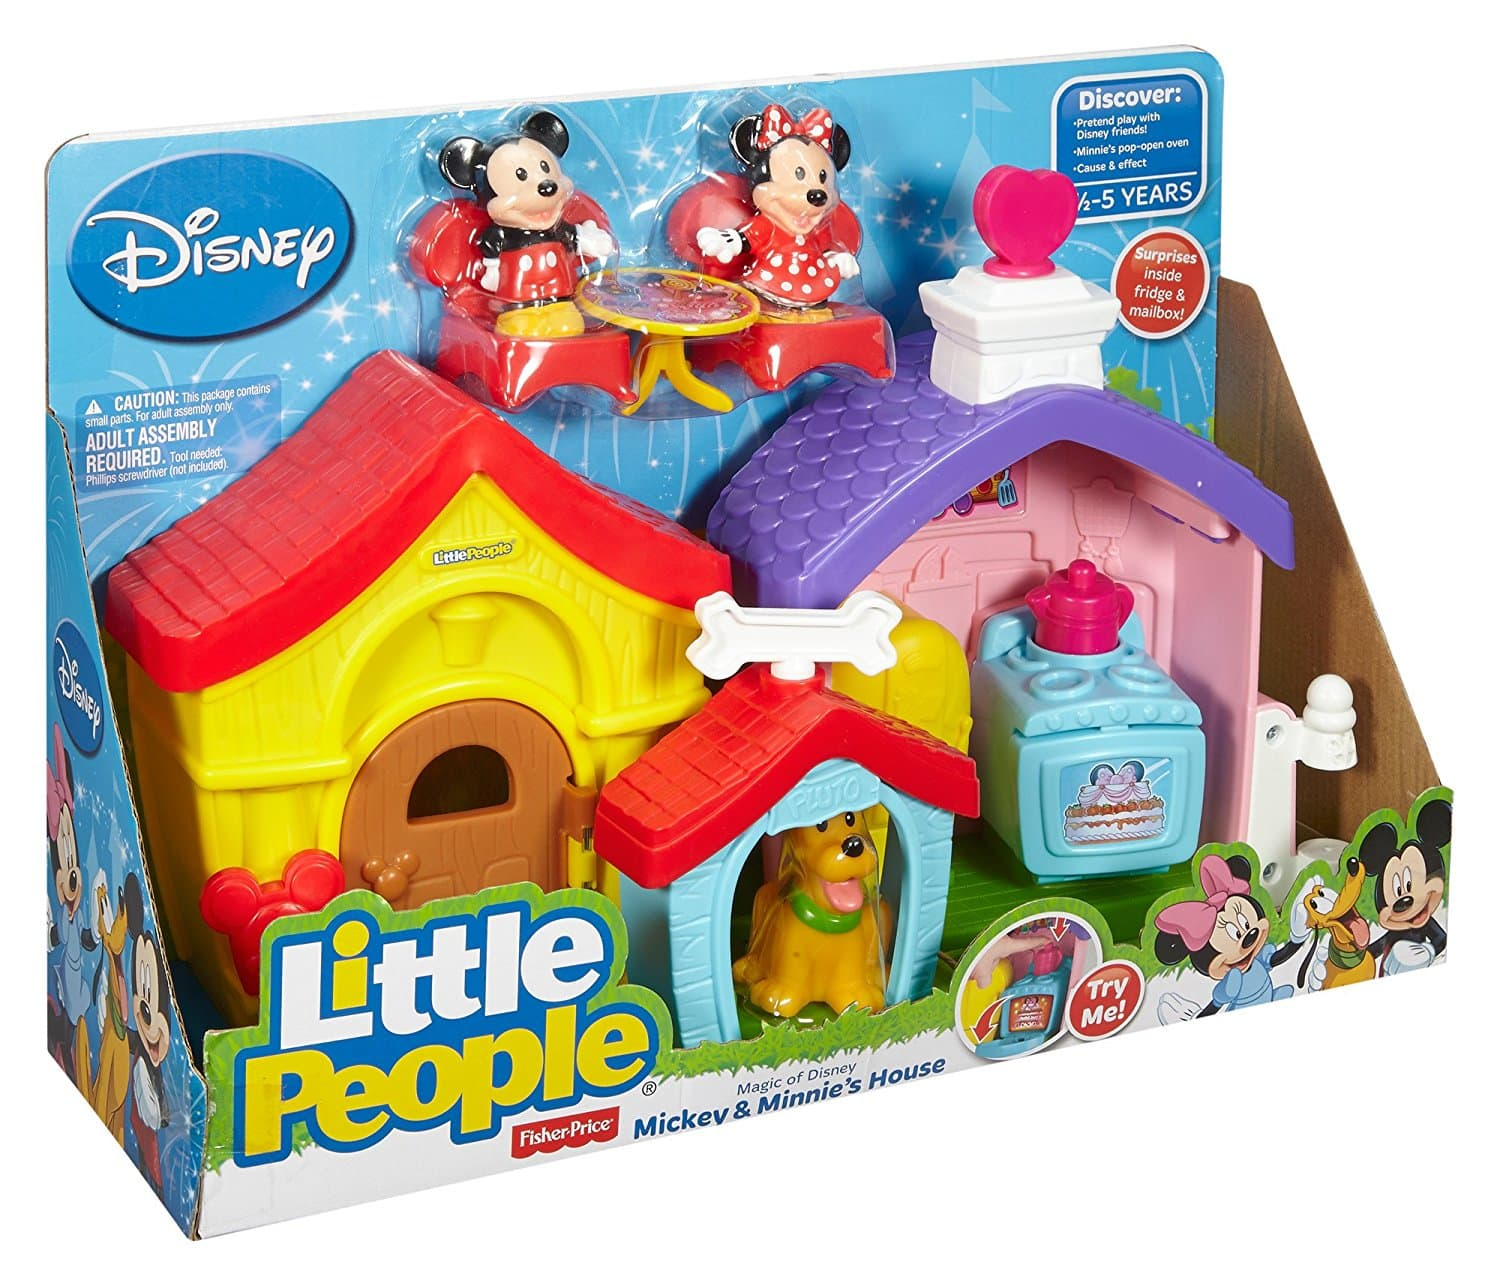 Fisher-Price Little People Magic of Disney, Mickey & Minnie's House - $15.29